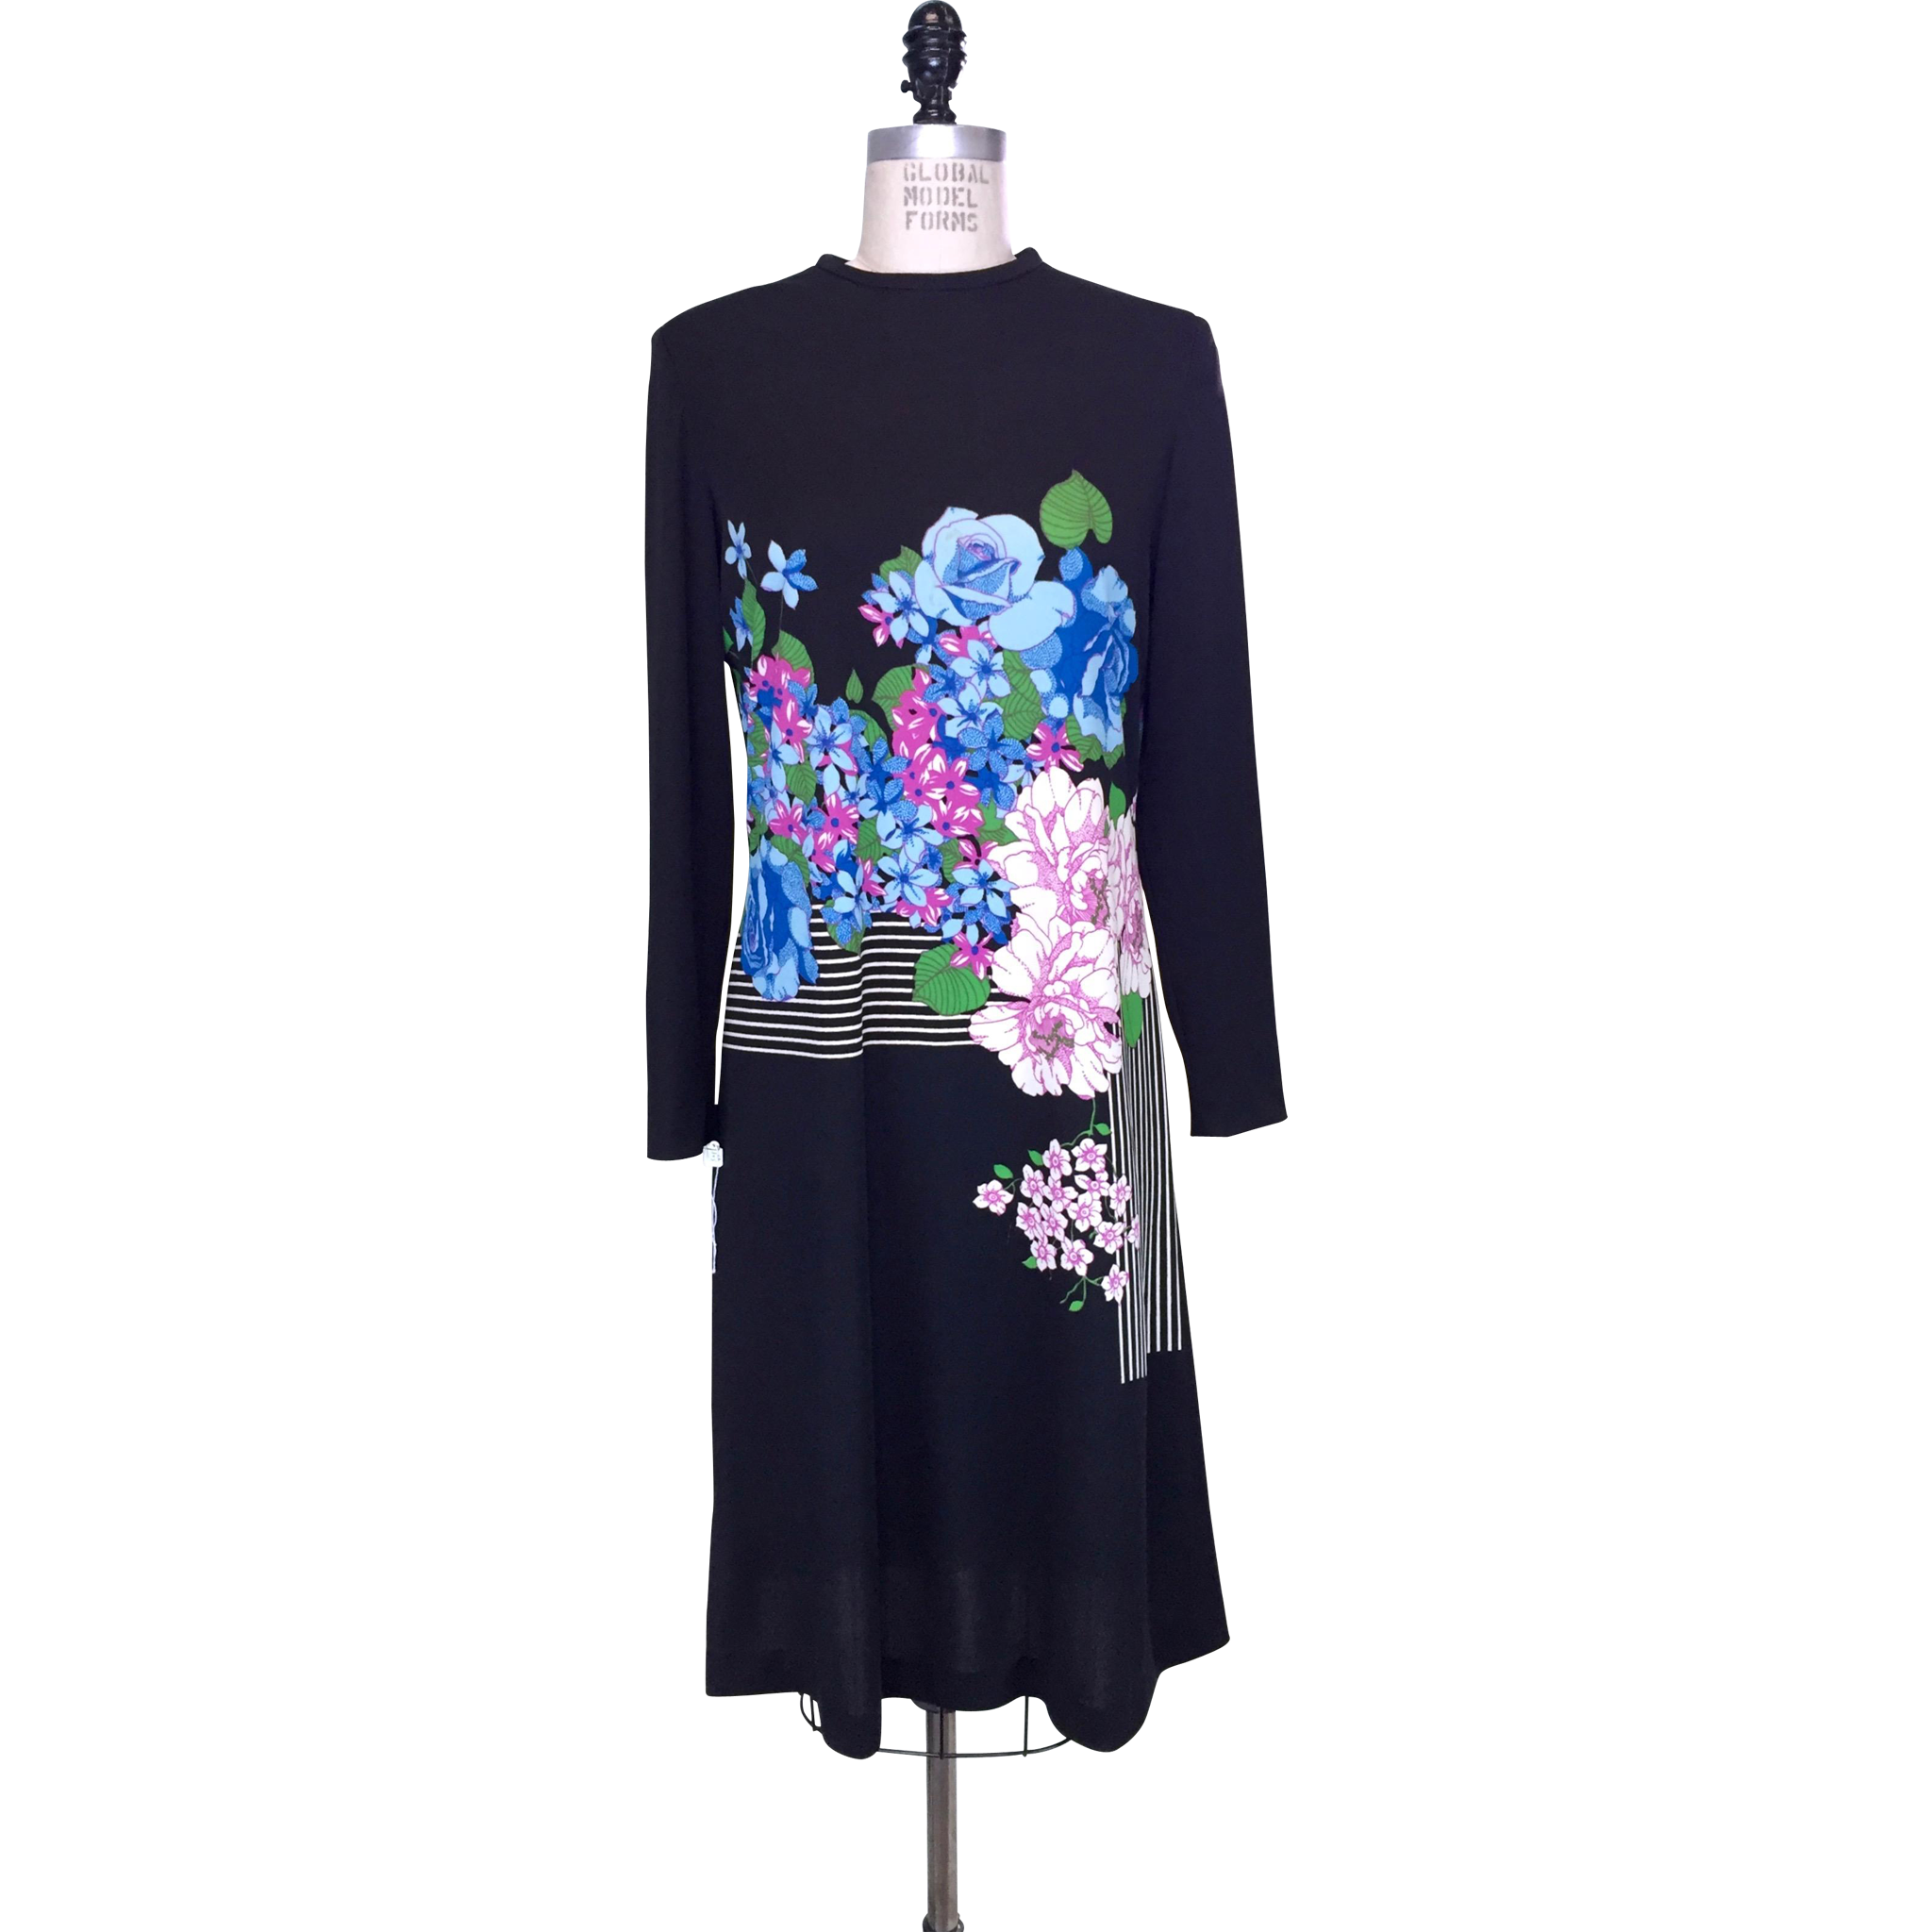 Vintage 1970s Black Jersey Dress with Blue Purple and White Floral Print